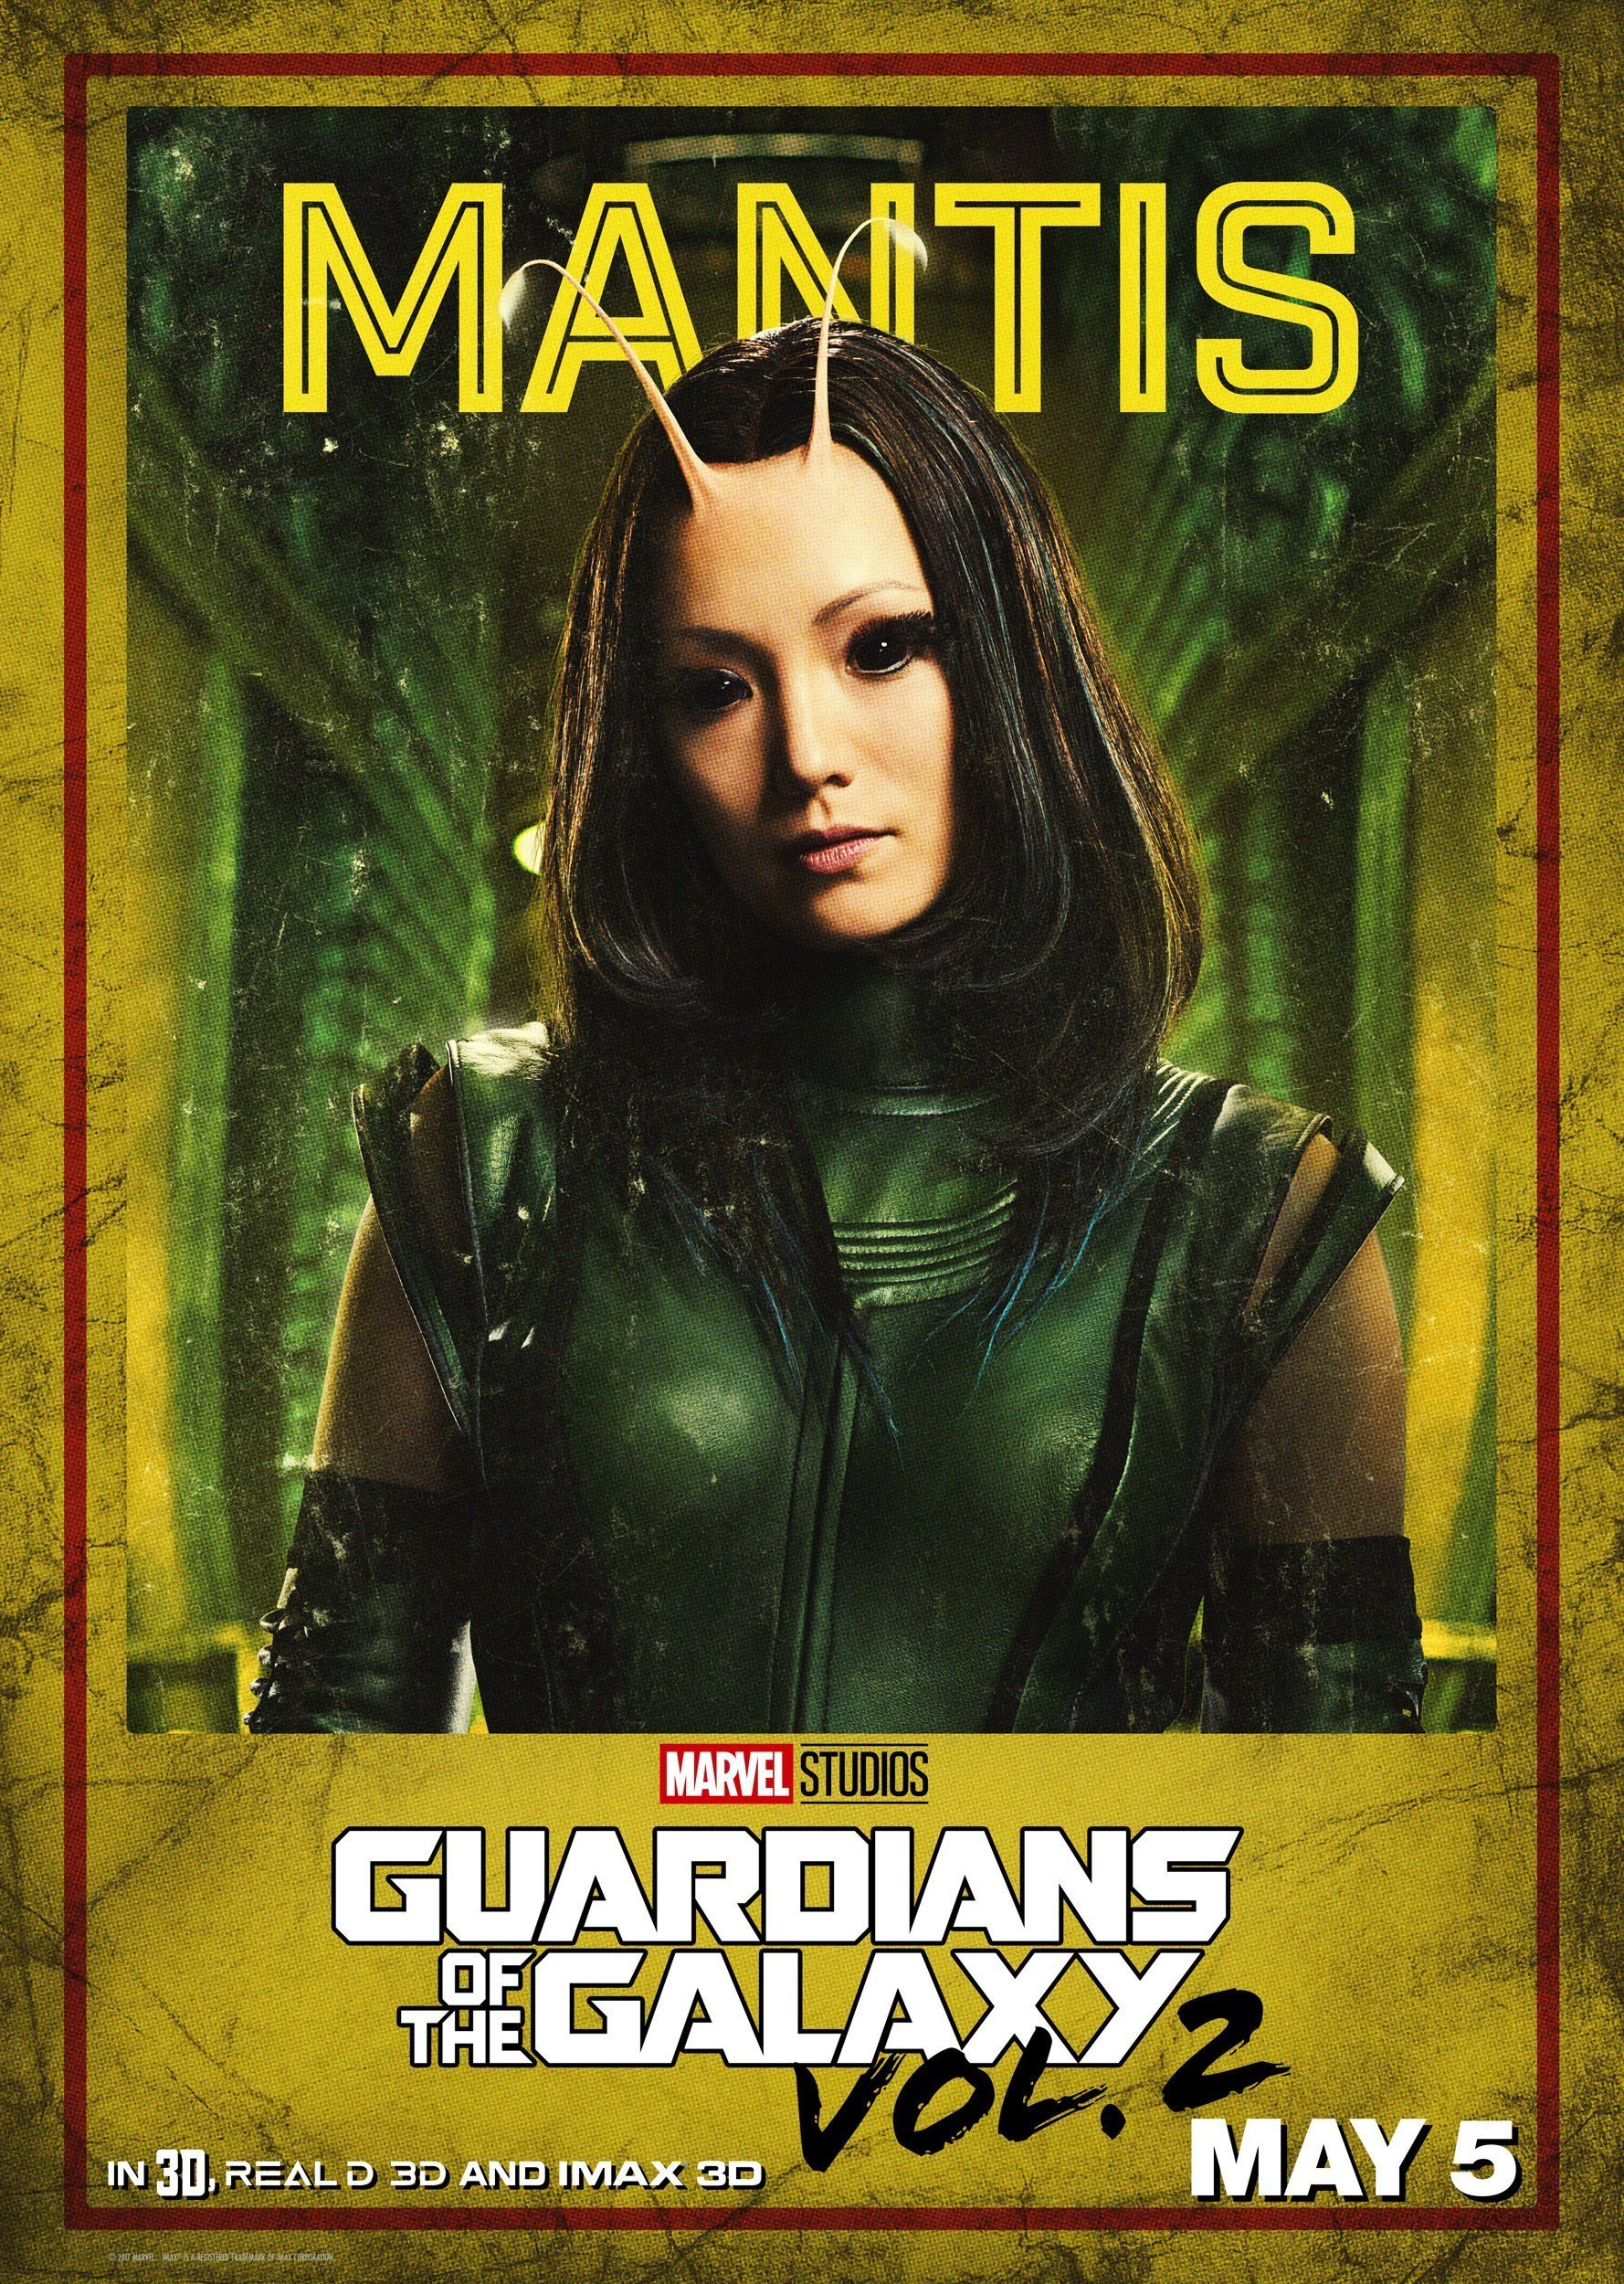 poster les gardiens de la galaxie vol 2 mantis pom klementieff. Black Bedroom Furniture Sets. Home Design Ideas